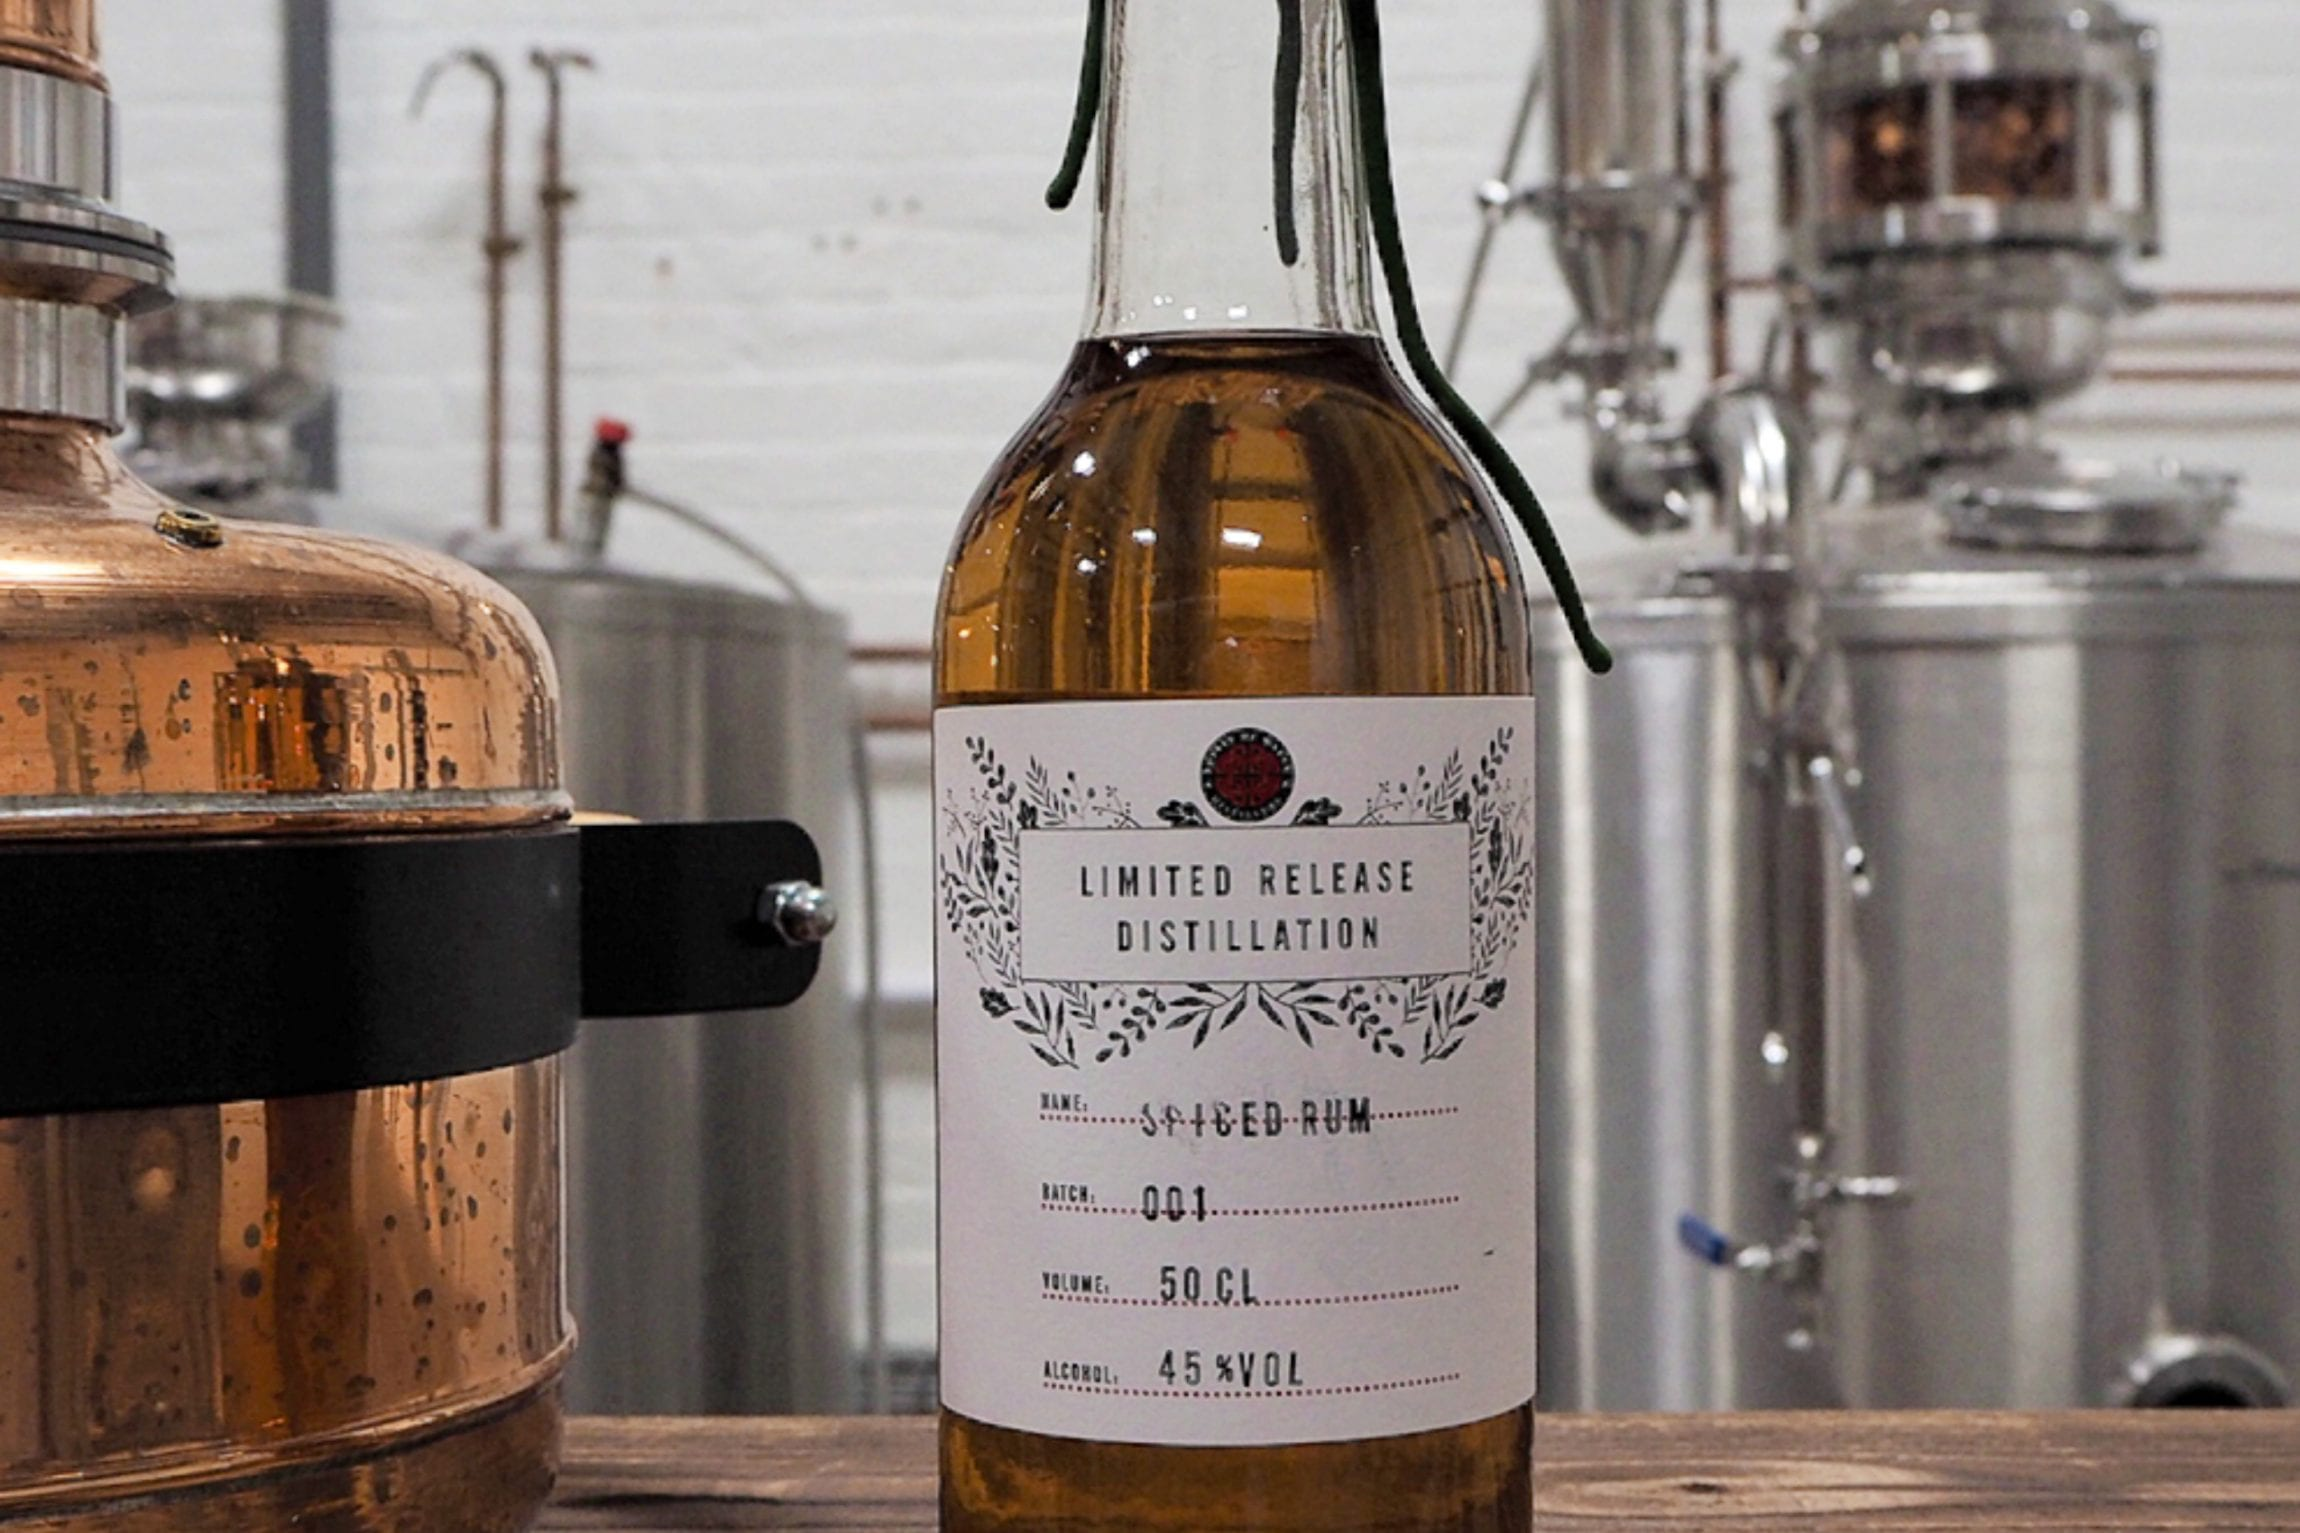 Spirit of Wales Distillery Release Welsh Rums in the Newport Distillery. Featured is the lightly spiced rum and white rum 50cL bottles.